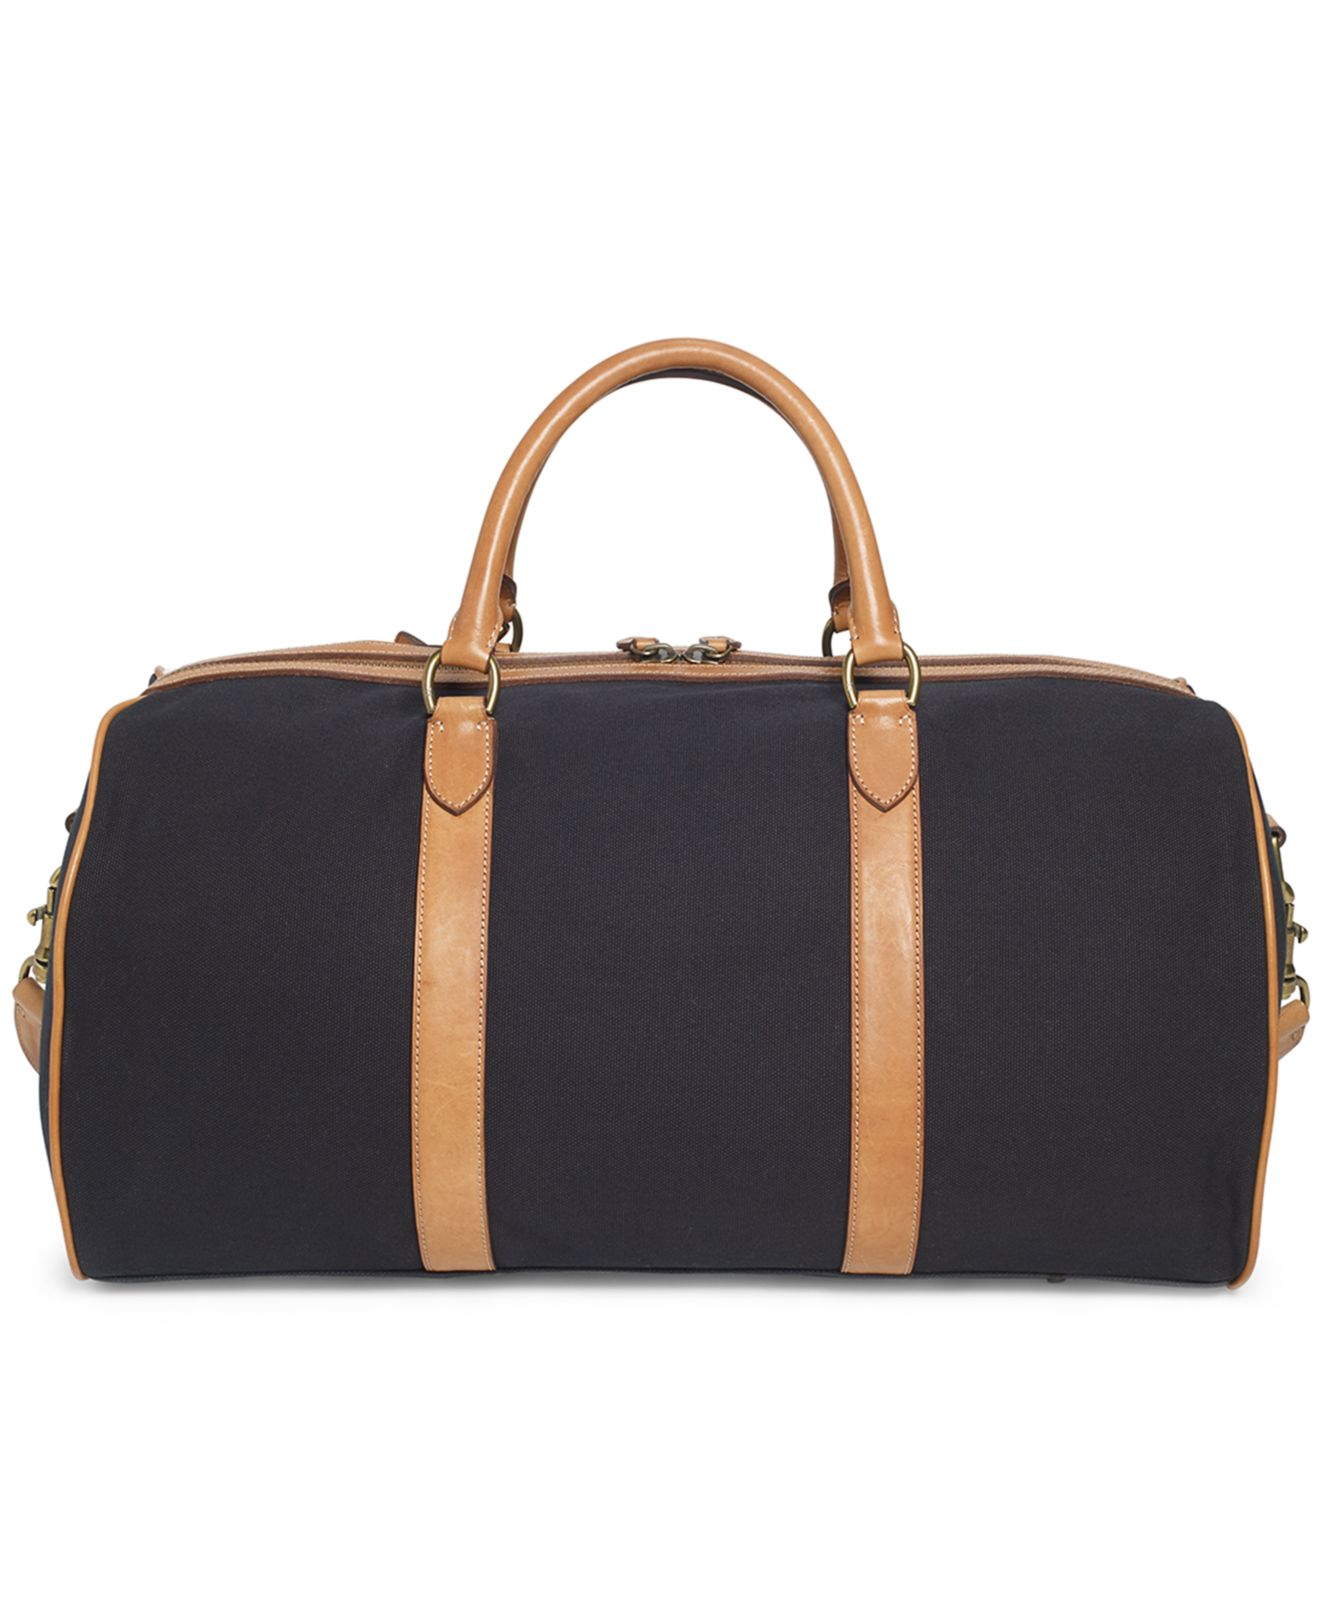 Lyst - Polo Ralph Lauren Canvas Black Watch Leather Detail Duffel ... 1877f8202e985